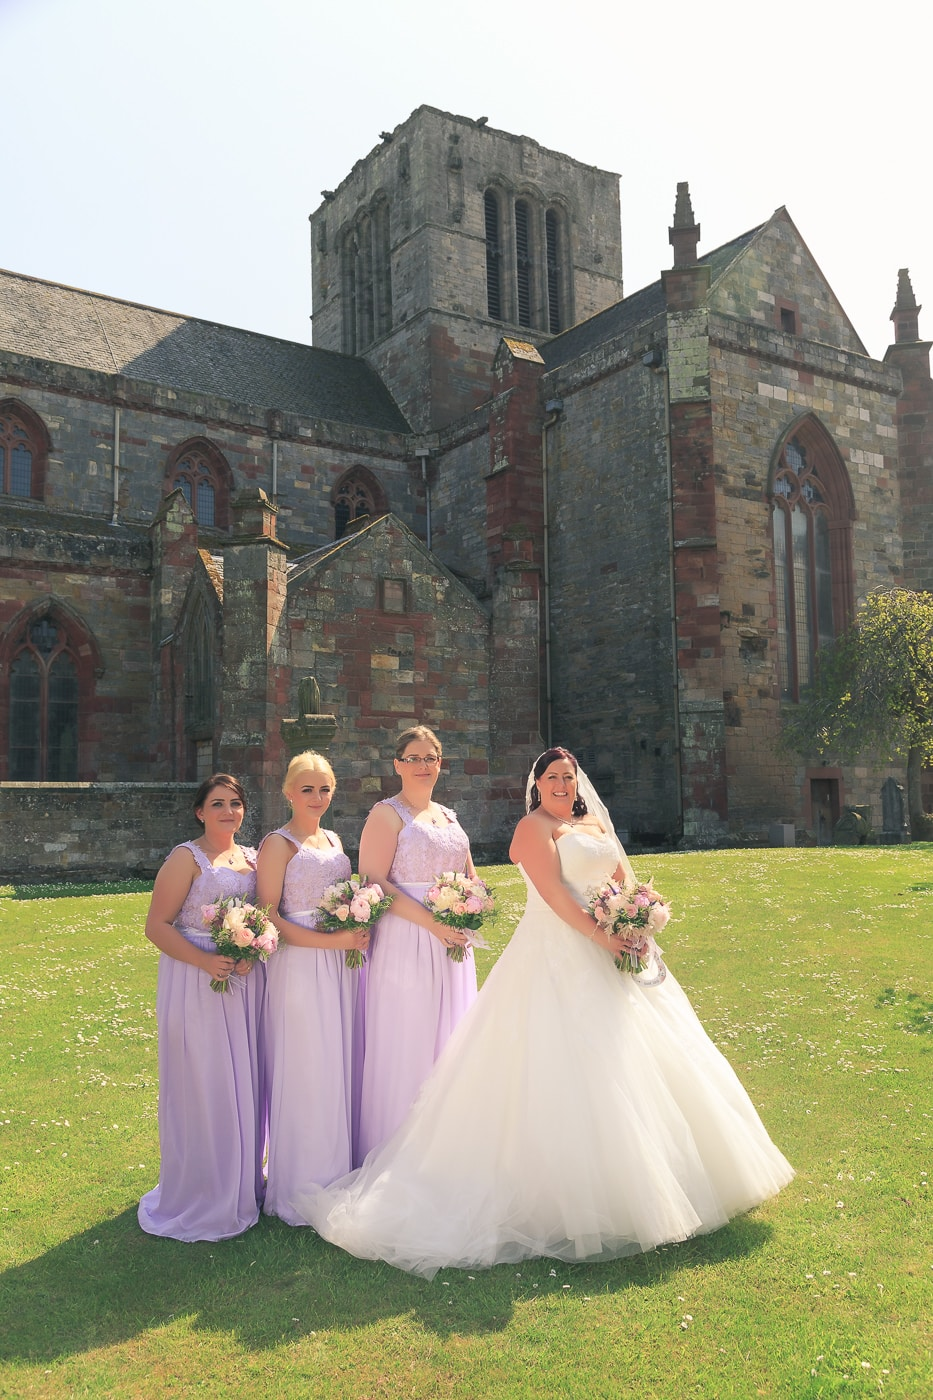 The bridal party in the church yard